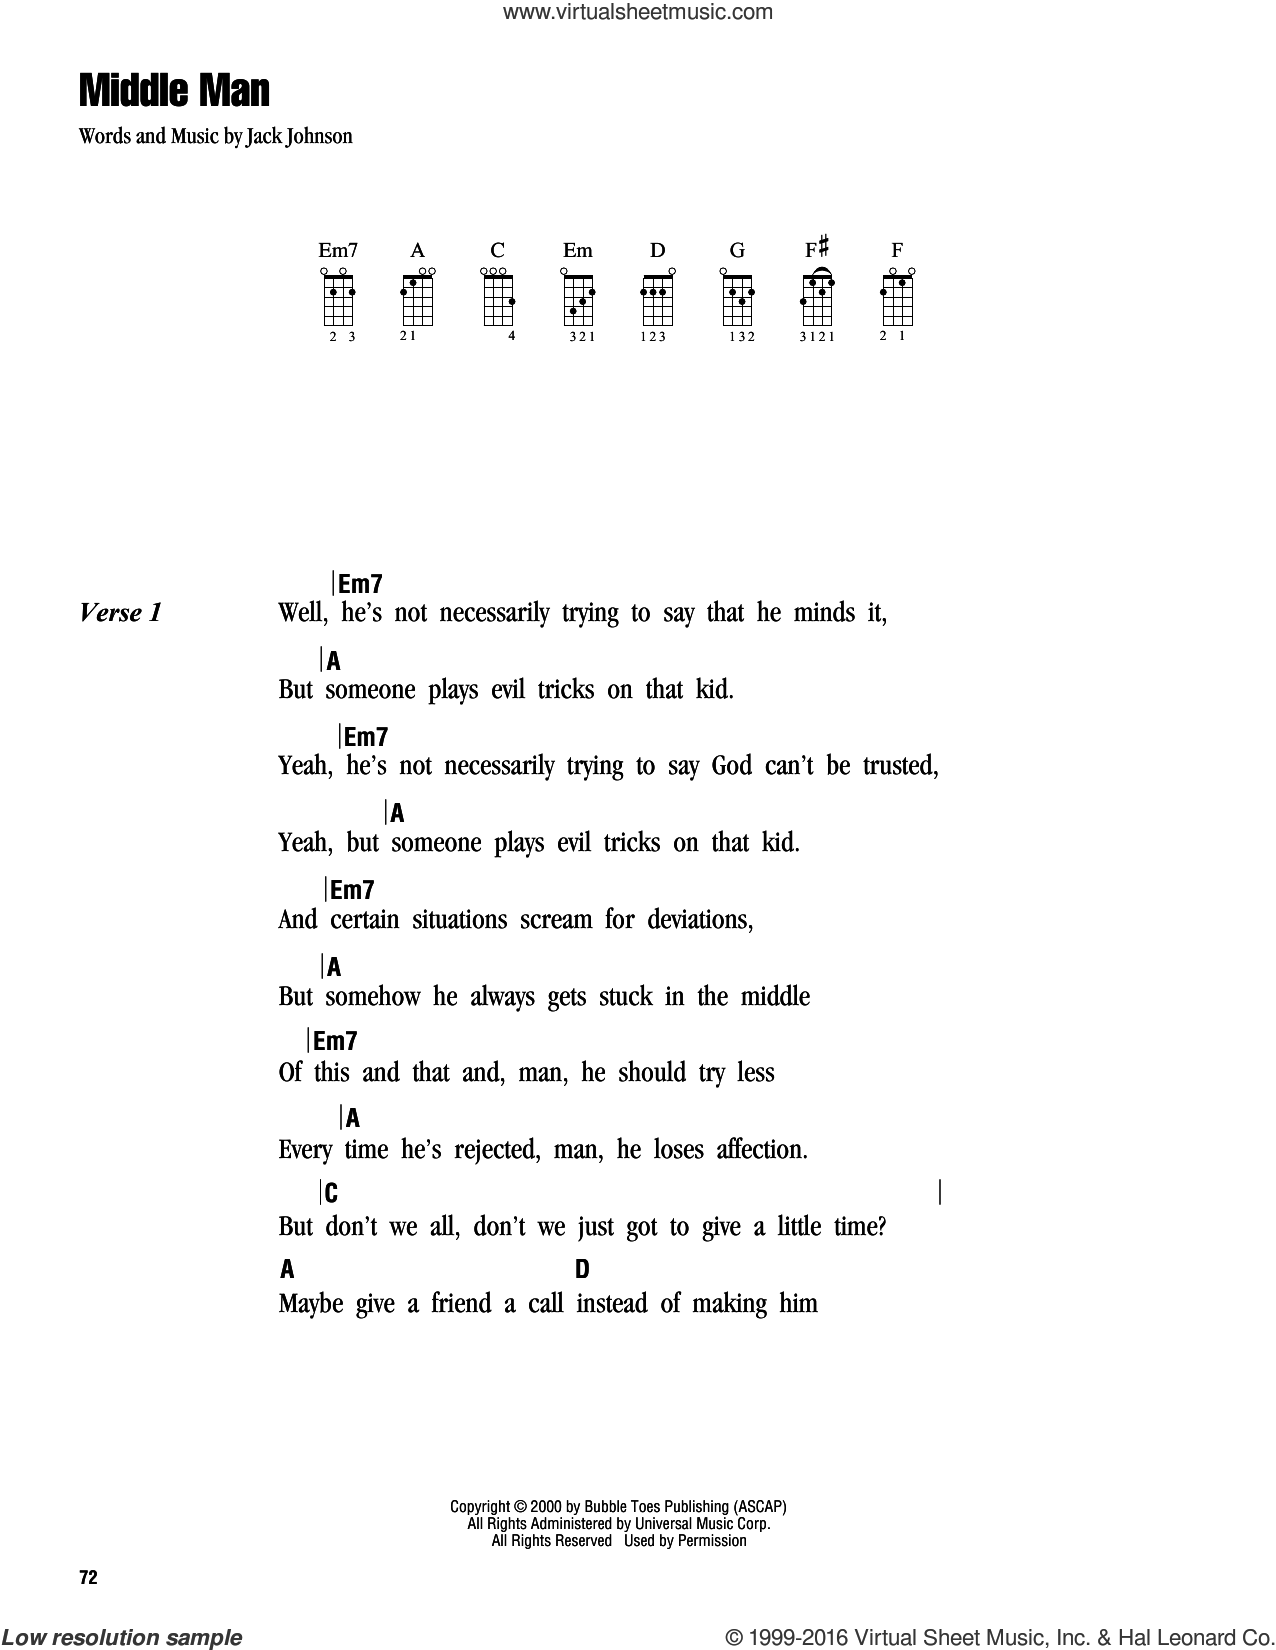 Middle Man sheet music for ukulele (chords) by Jack Johnson, intermediate